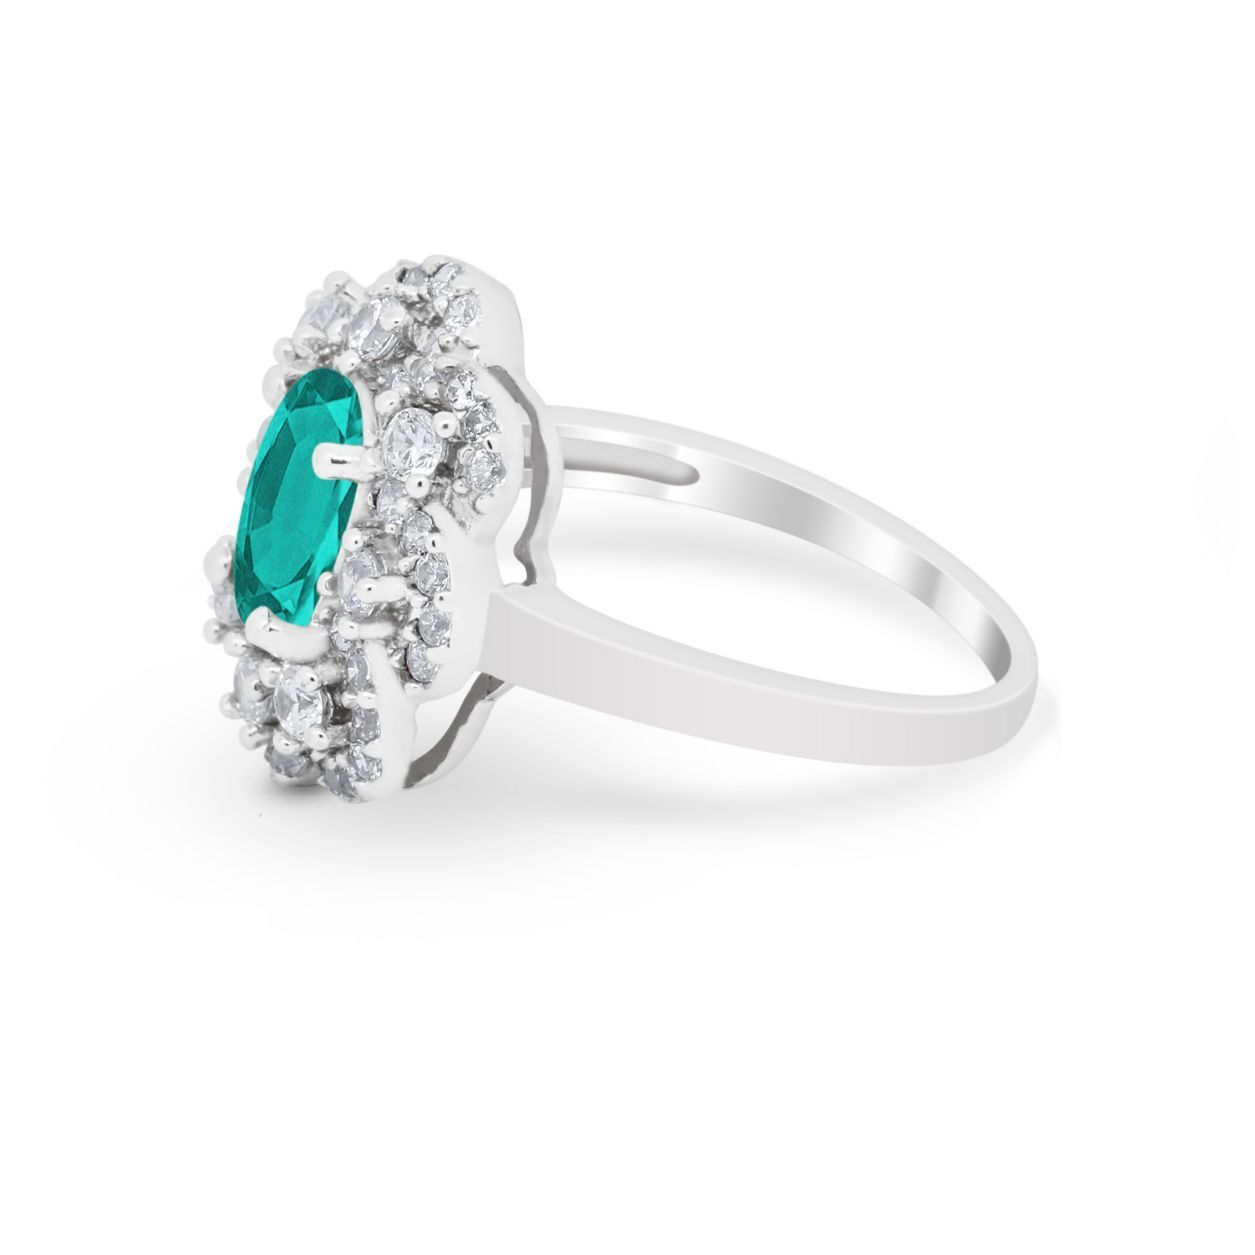 Art Deco Oval Engagement Ring Simulated Paraiba Tourmaline CZ 925 Sterling Silver